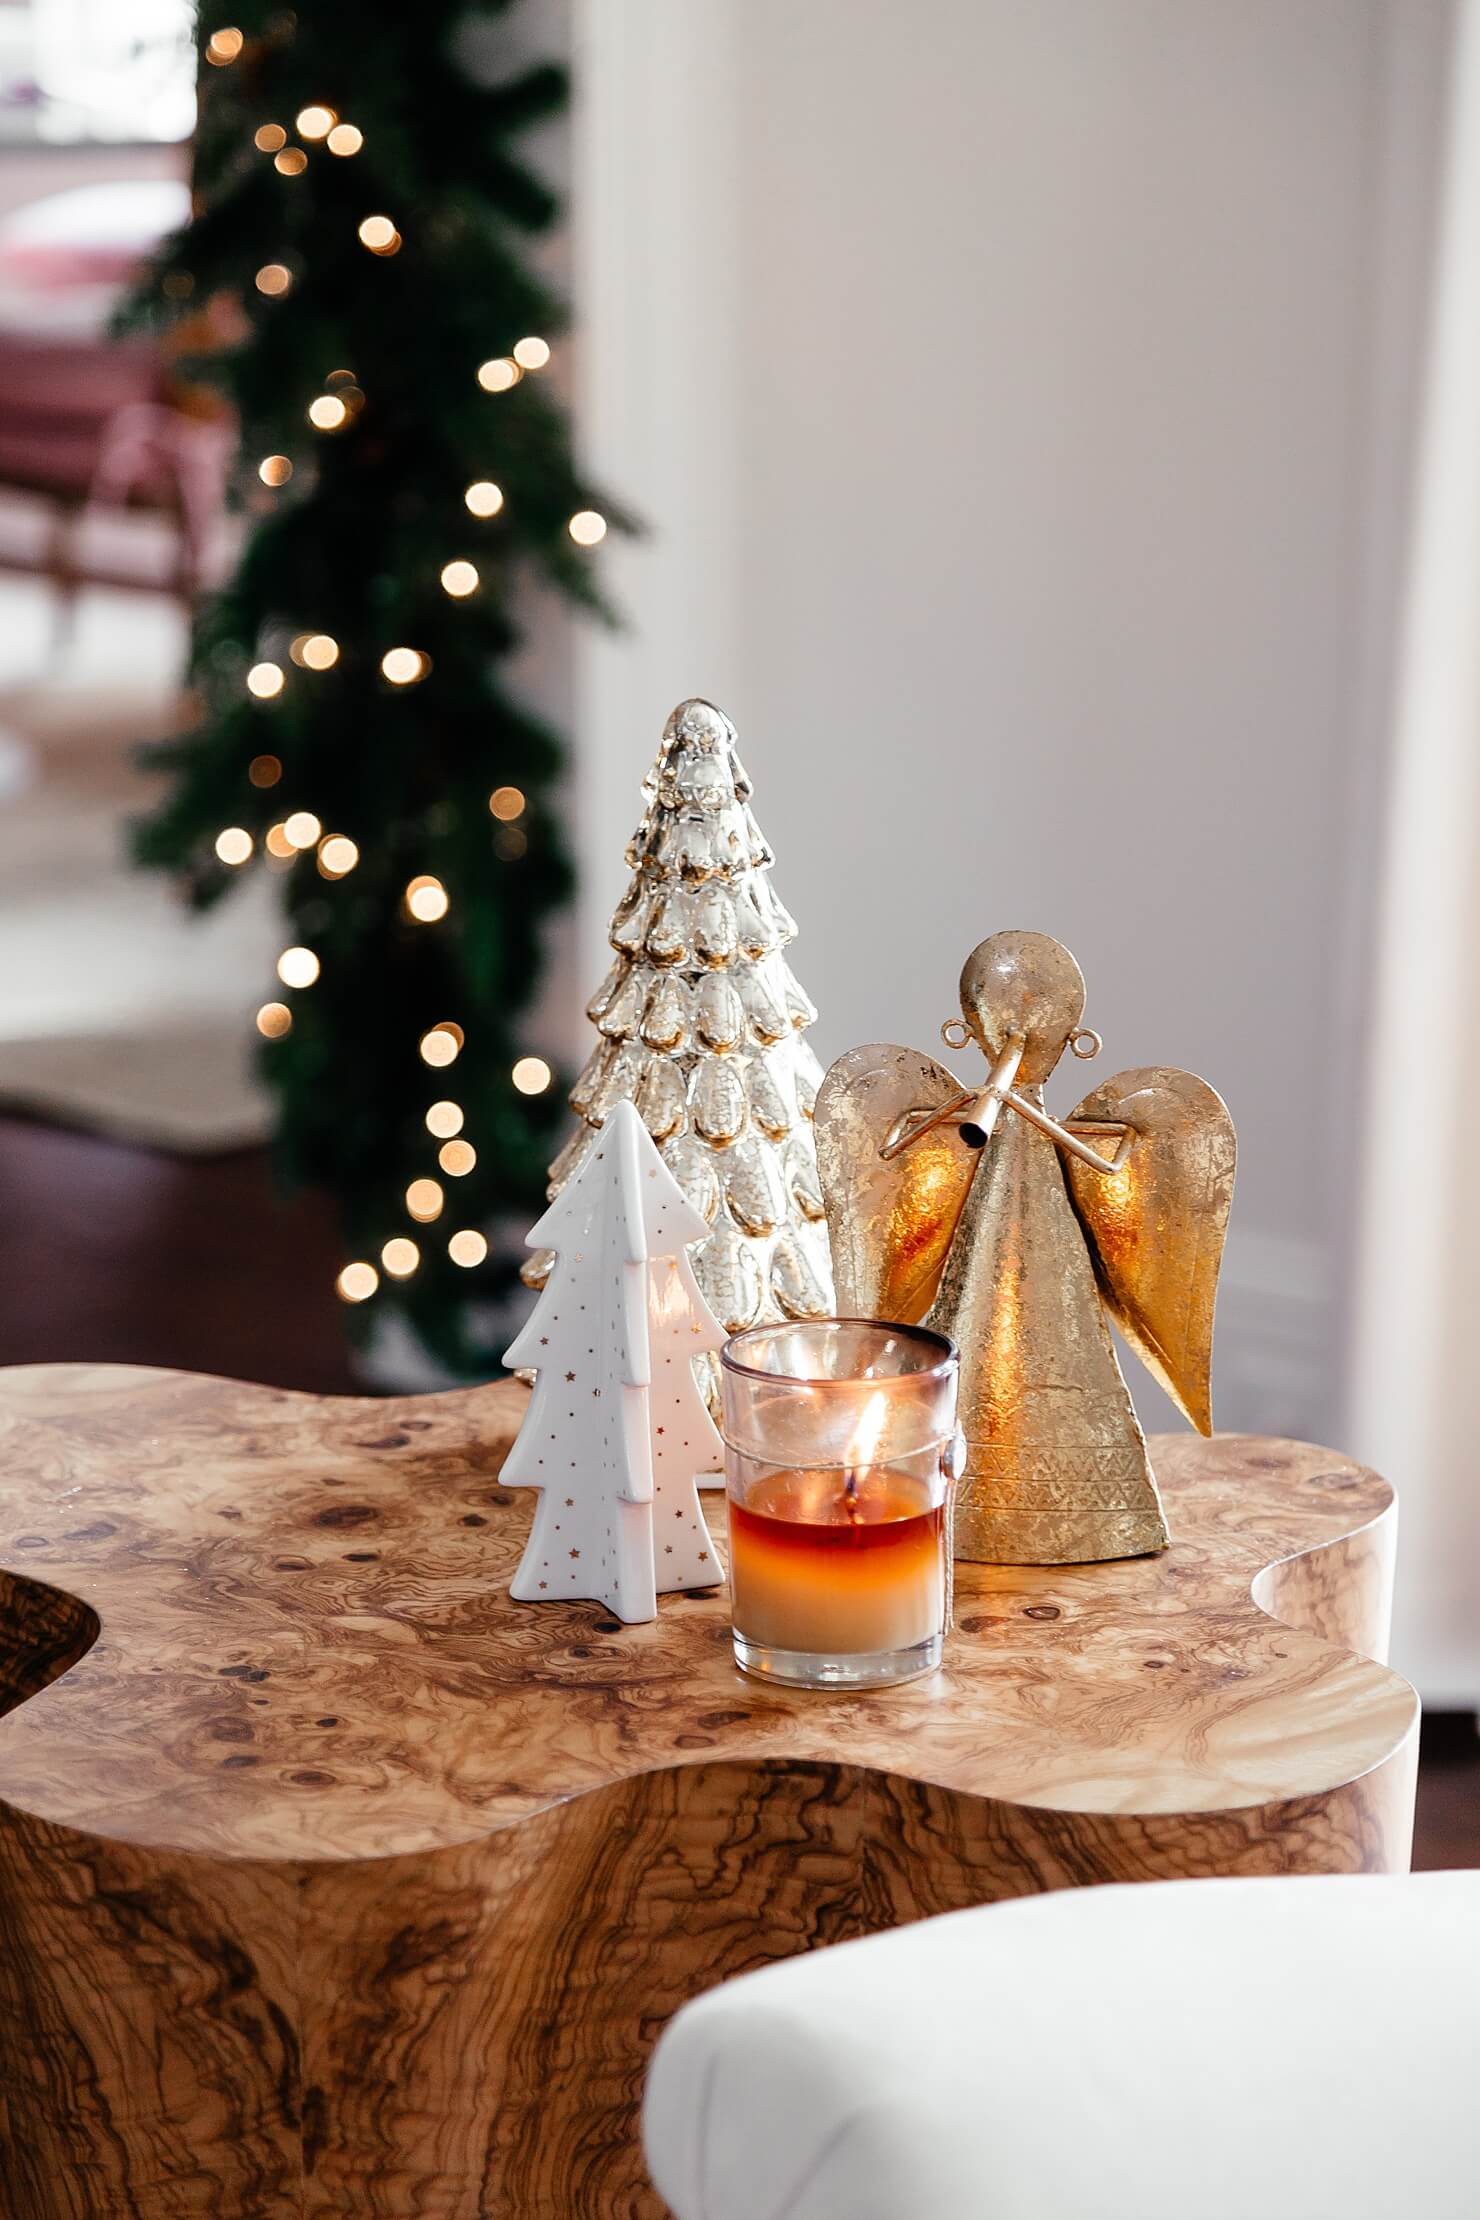 6 simple ways to decorate for the holidays